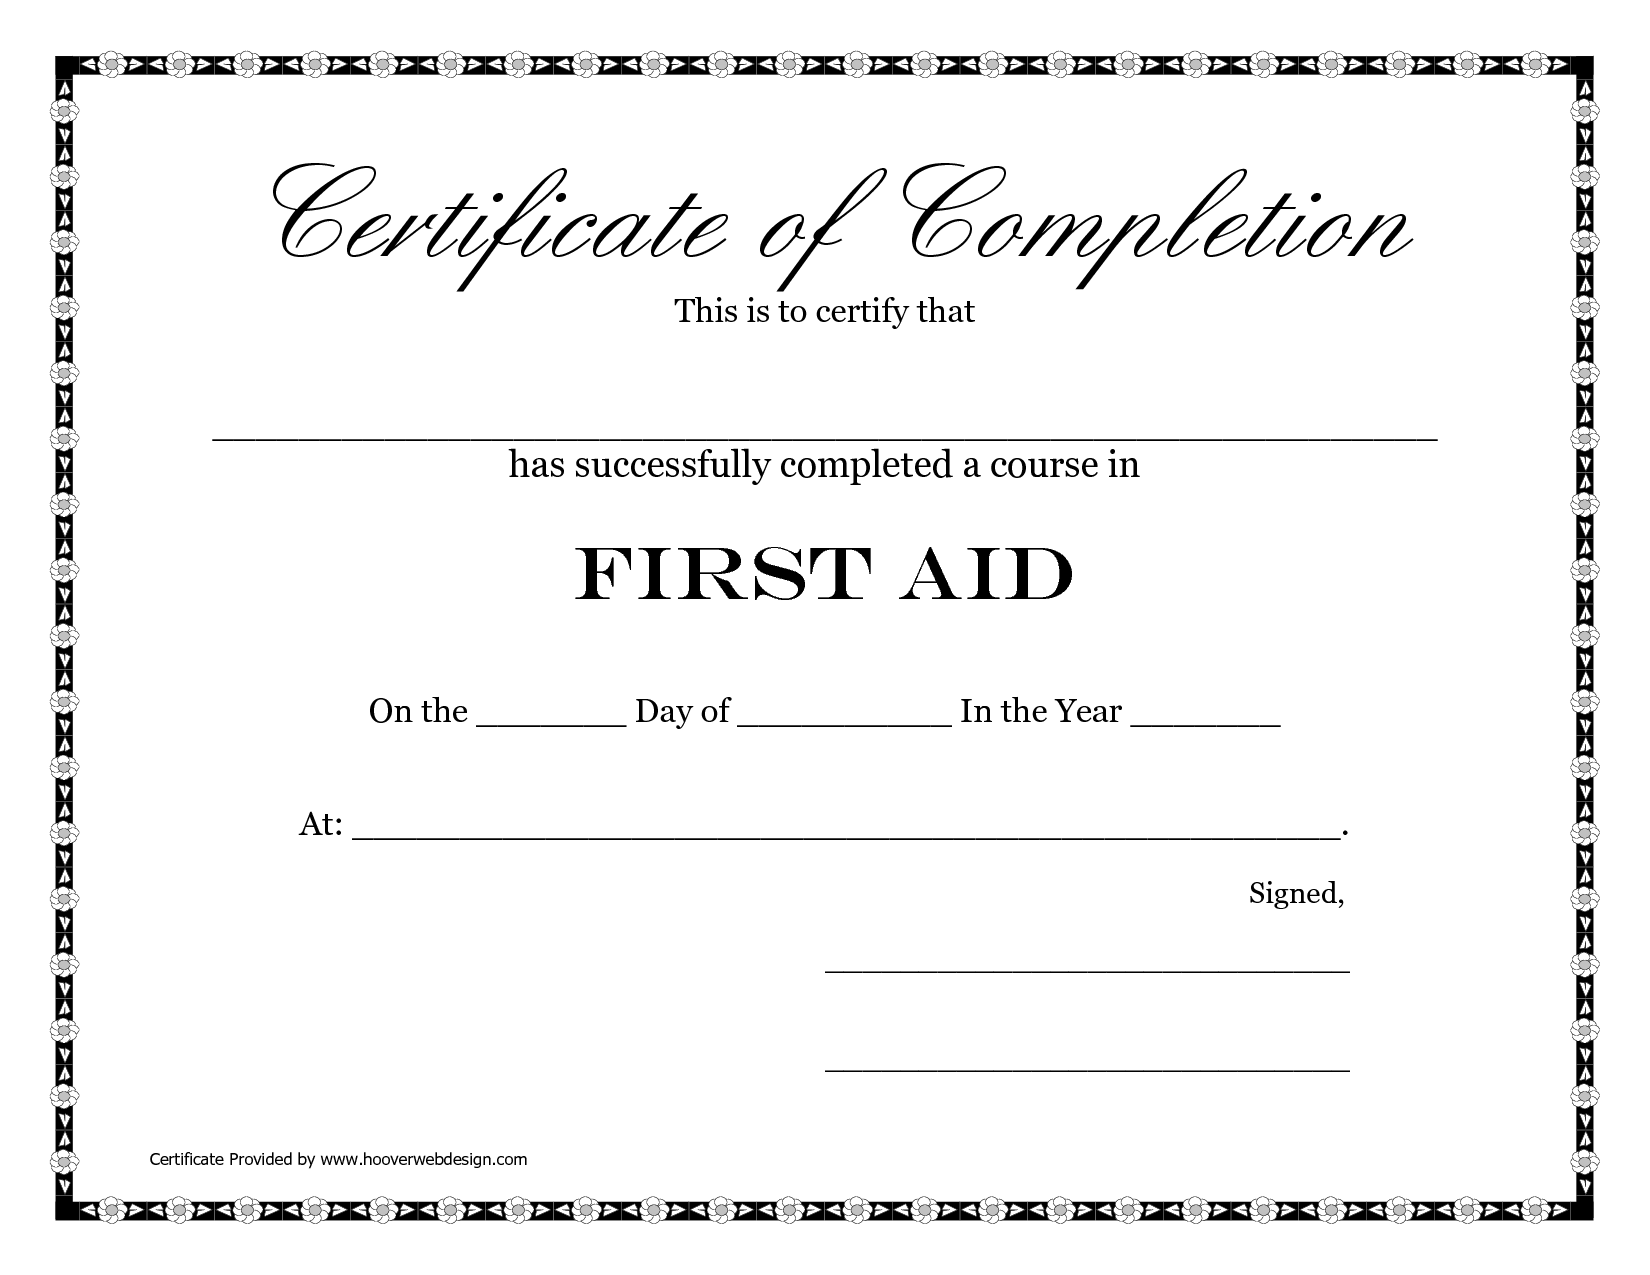 first aid certificate template free other printable images gallery category page 112